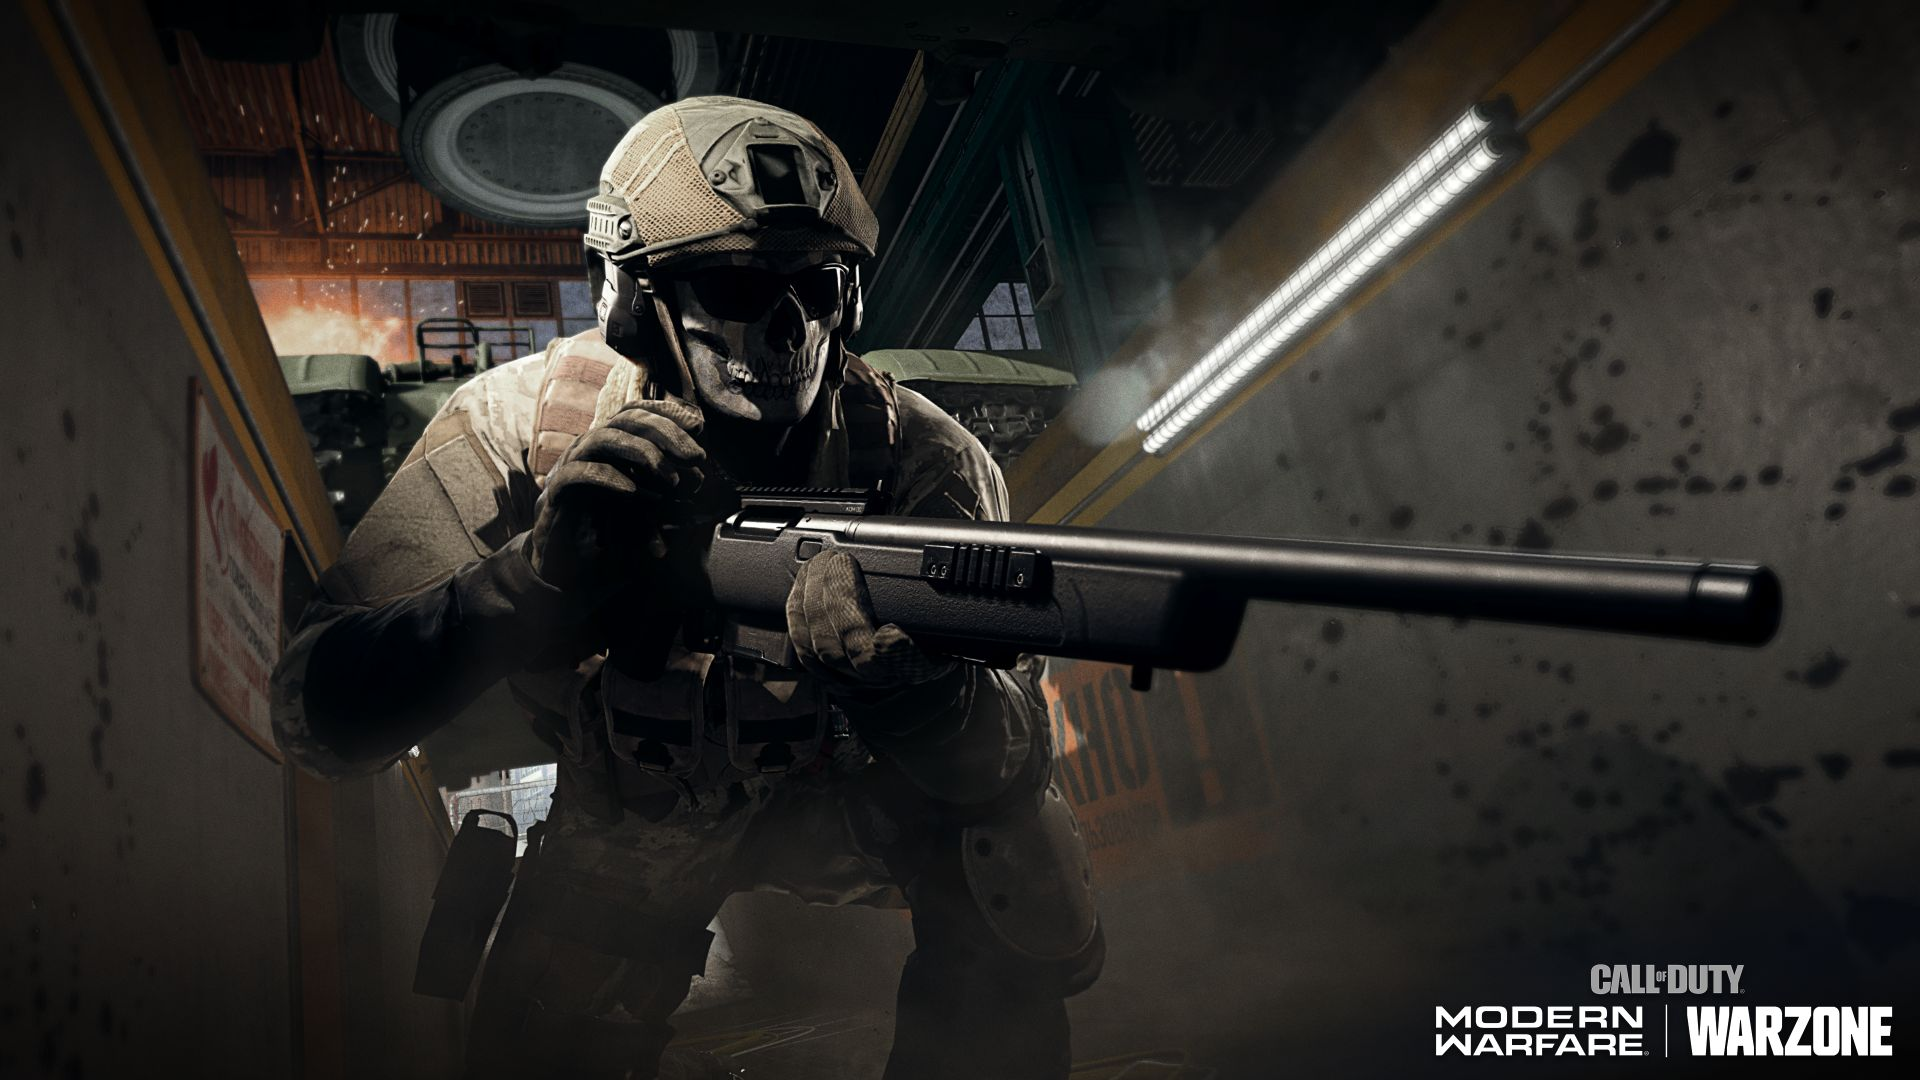 Call of Duty: Modern Warfare install now exceeds a 250GB SSD